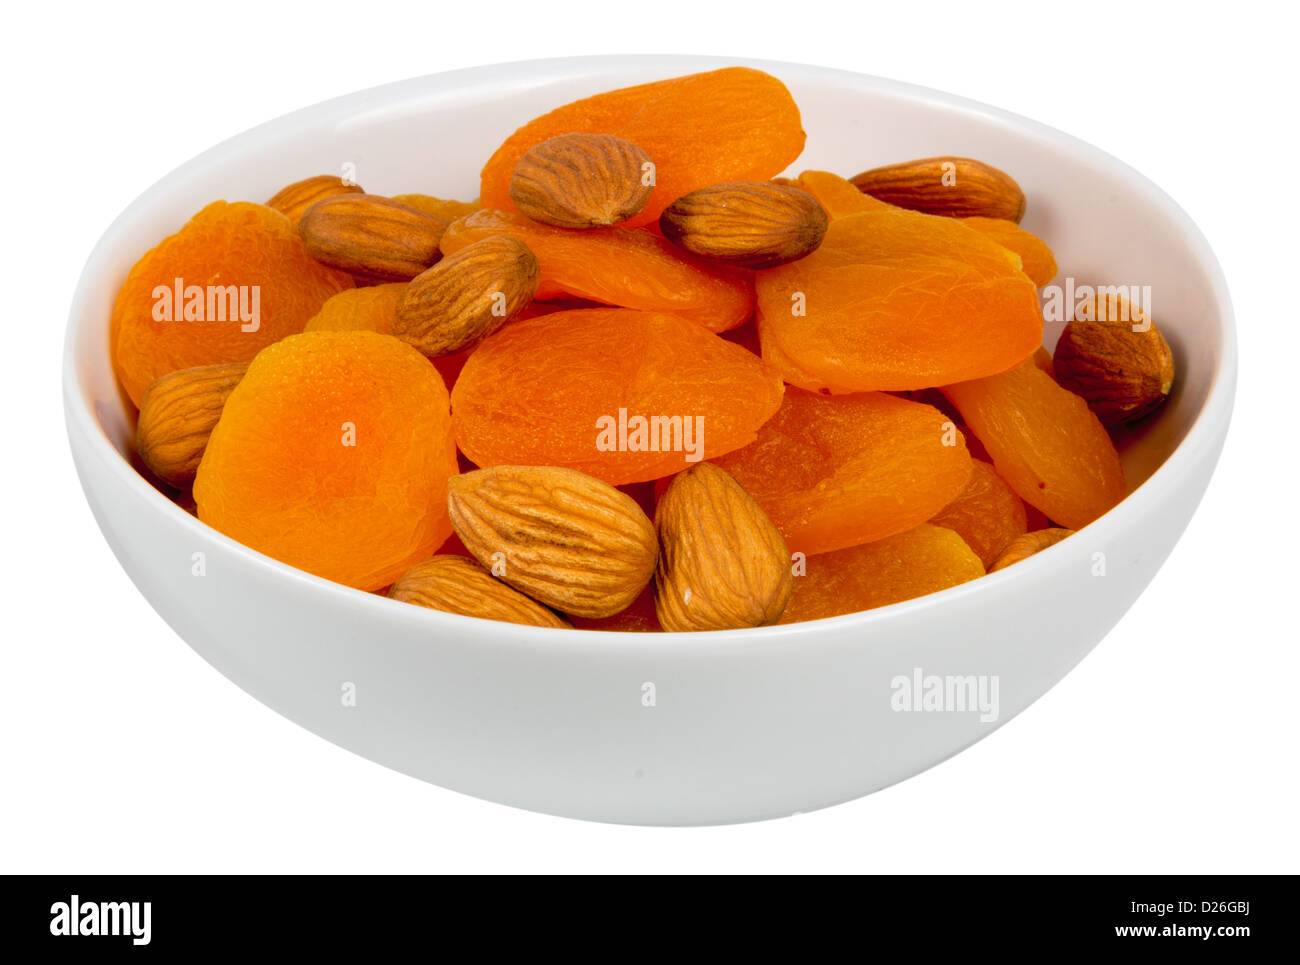 Mixed almonds and dried apricots isolated on white - Stock Image